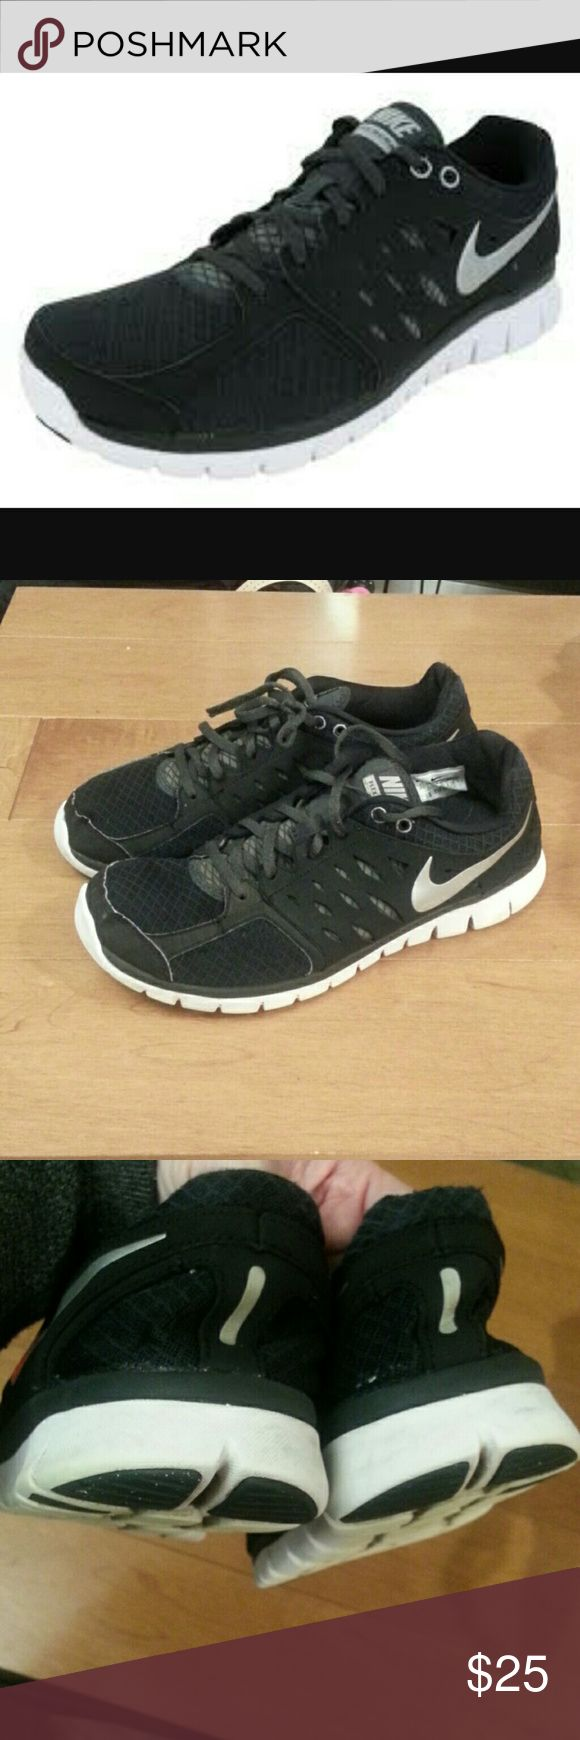 Nike Flex Men's Cross Training Shoes Gently used condition. Size 11.5 Nike Shoes Athletic Shoes